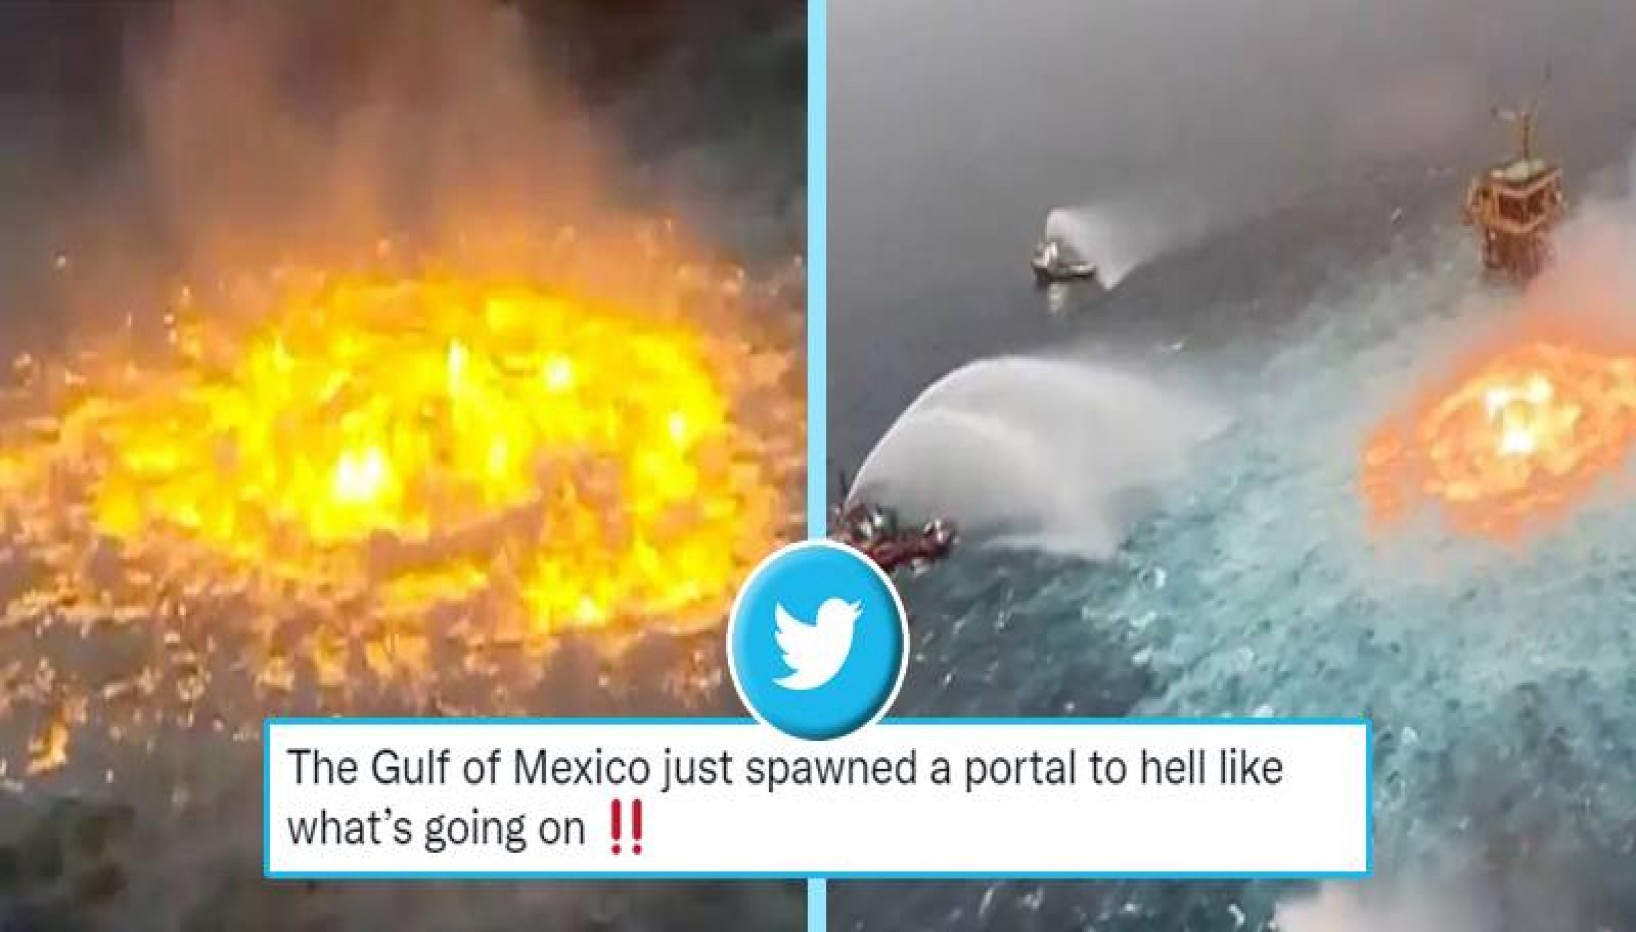 There's A Fire In The Middle Of The Ocean And Twitter Thinks It's Portal To Hell